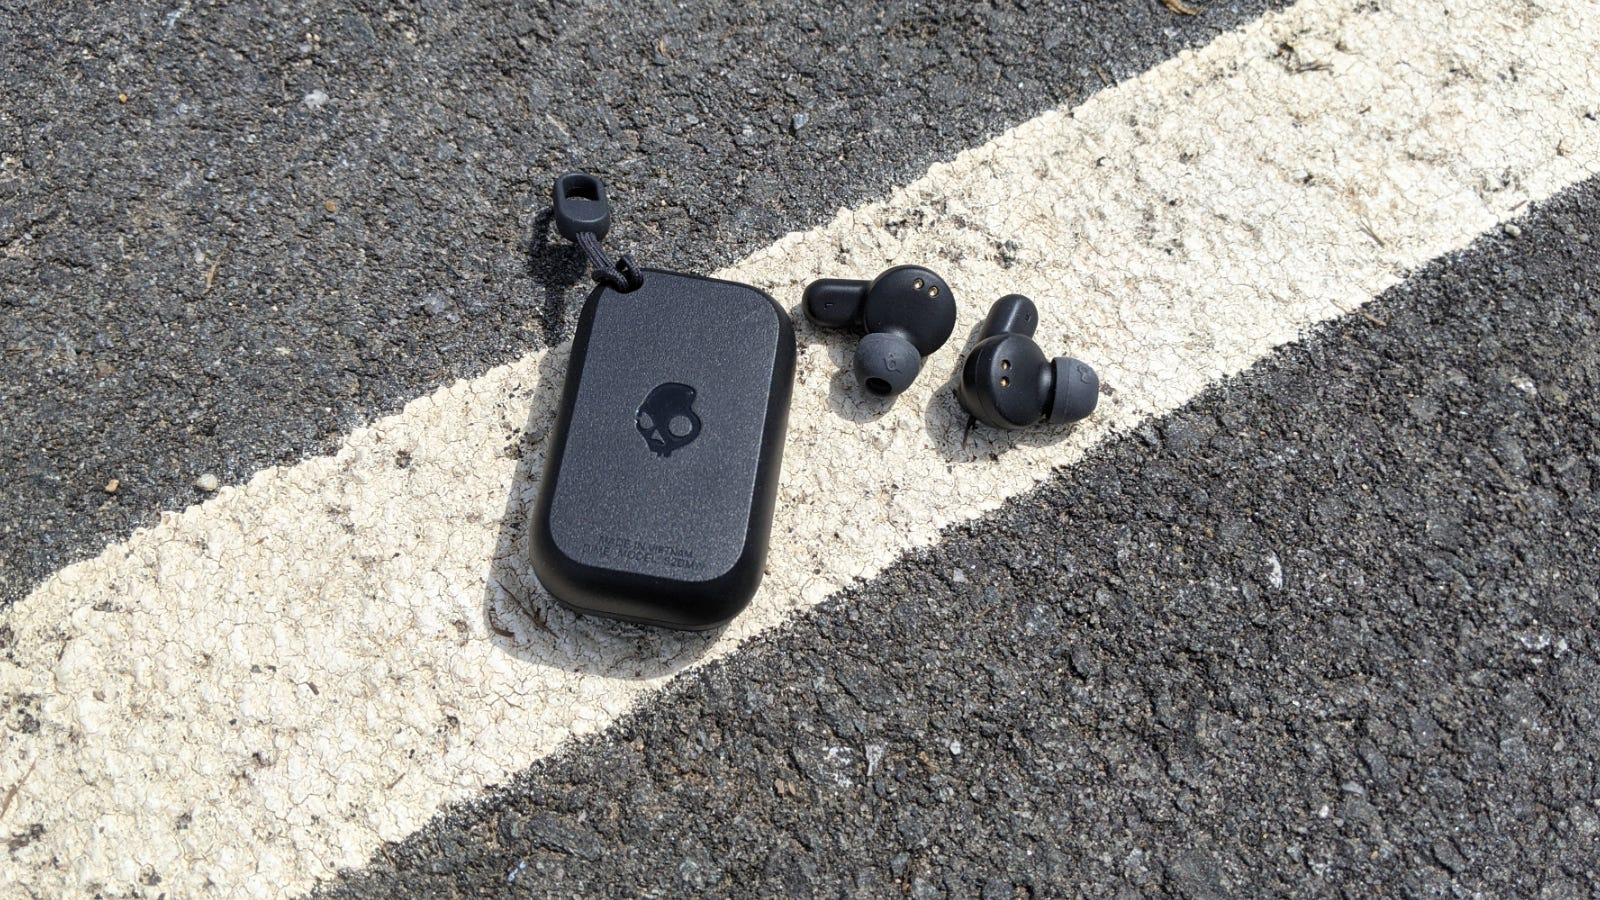 Skullcandy Dime case and earbuds separated on pavement